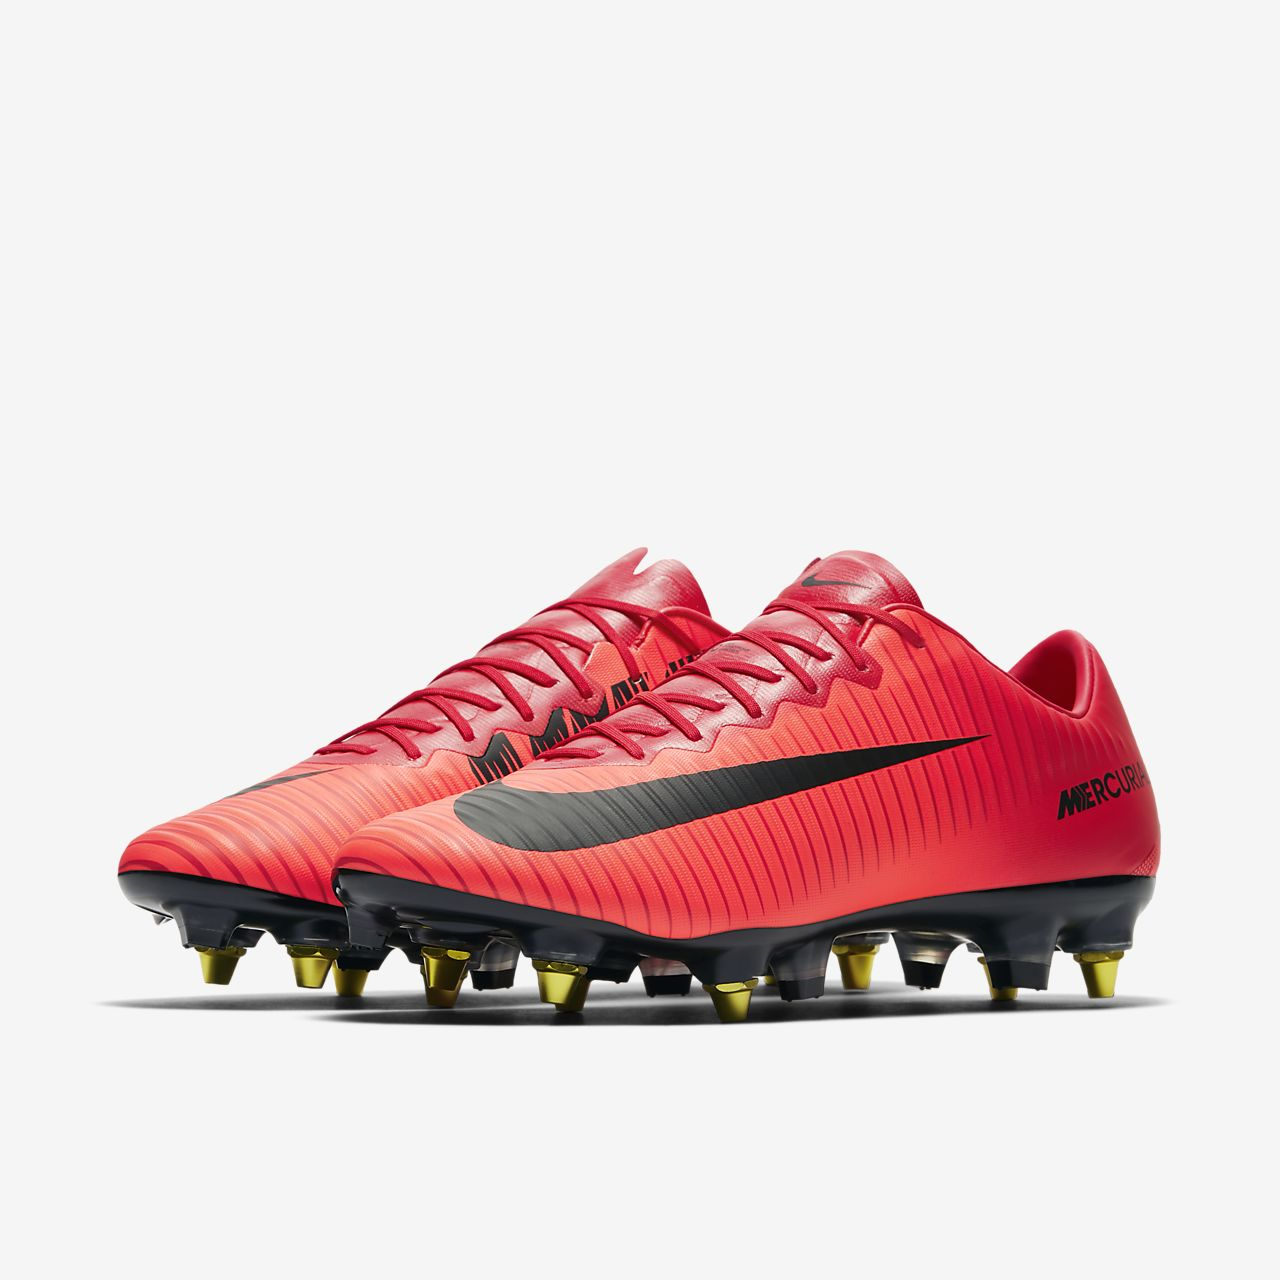 0d1ecb92304b0 Acquista 2 OFF QUALSIASI nike mercurial vapor xi acquista CASE E ...